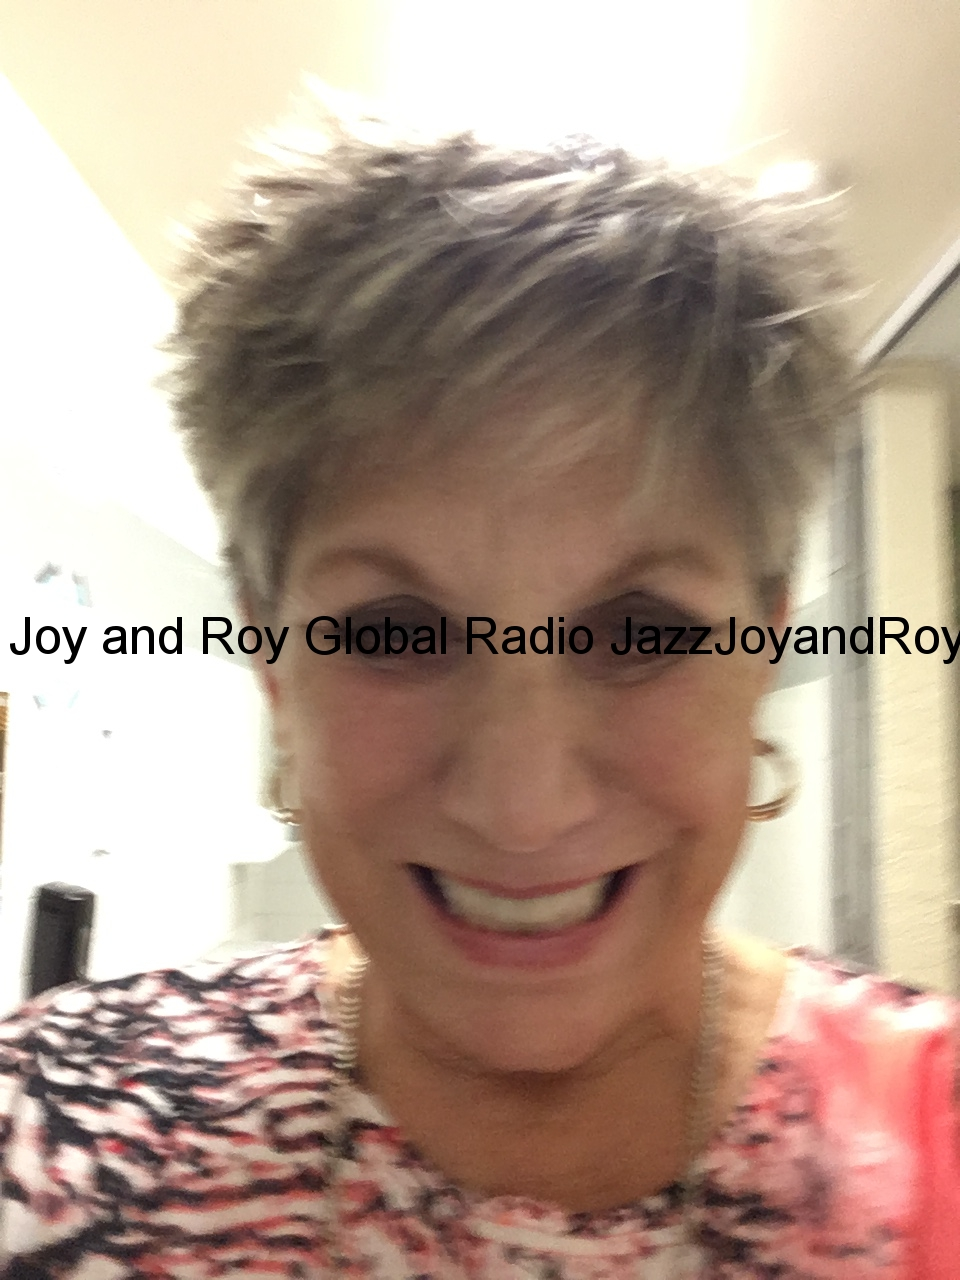 Roy O'Dell Gray Sr's 'Sugar Honey Baby' and wife Kathryn 'Kathy' Diane Gray looking pretty and beautiful as usual at one of her hubby's DJ appearances in The United States of America. Kathryn selects Roy's music.------ Listeners who catch Roy's famous comments towards the end of most 'News and Politics from Jazz Joy and Roy' episodes know what really put the 'Joy' in Jazz Joy and Roy.